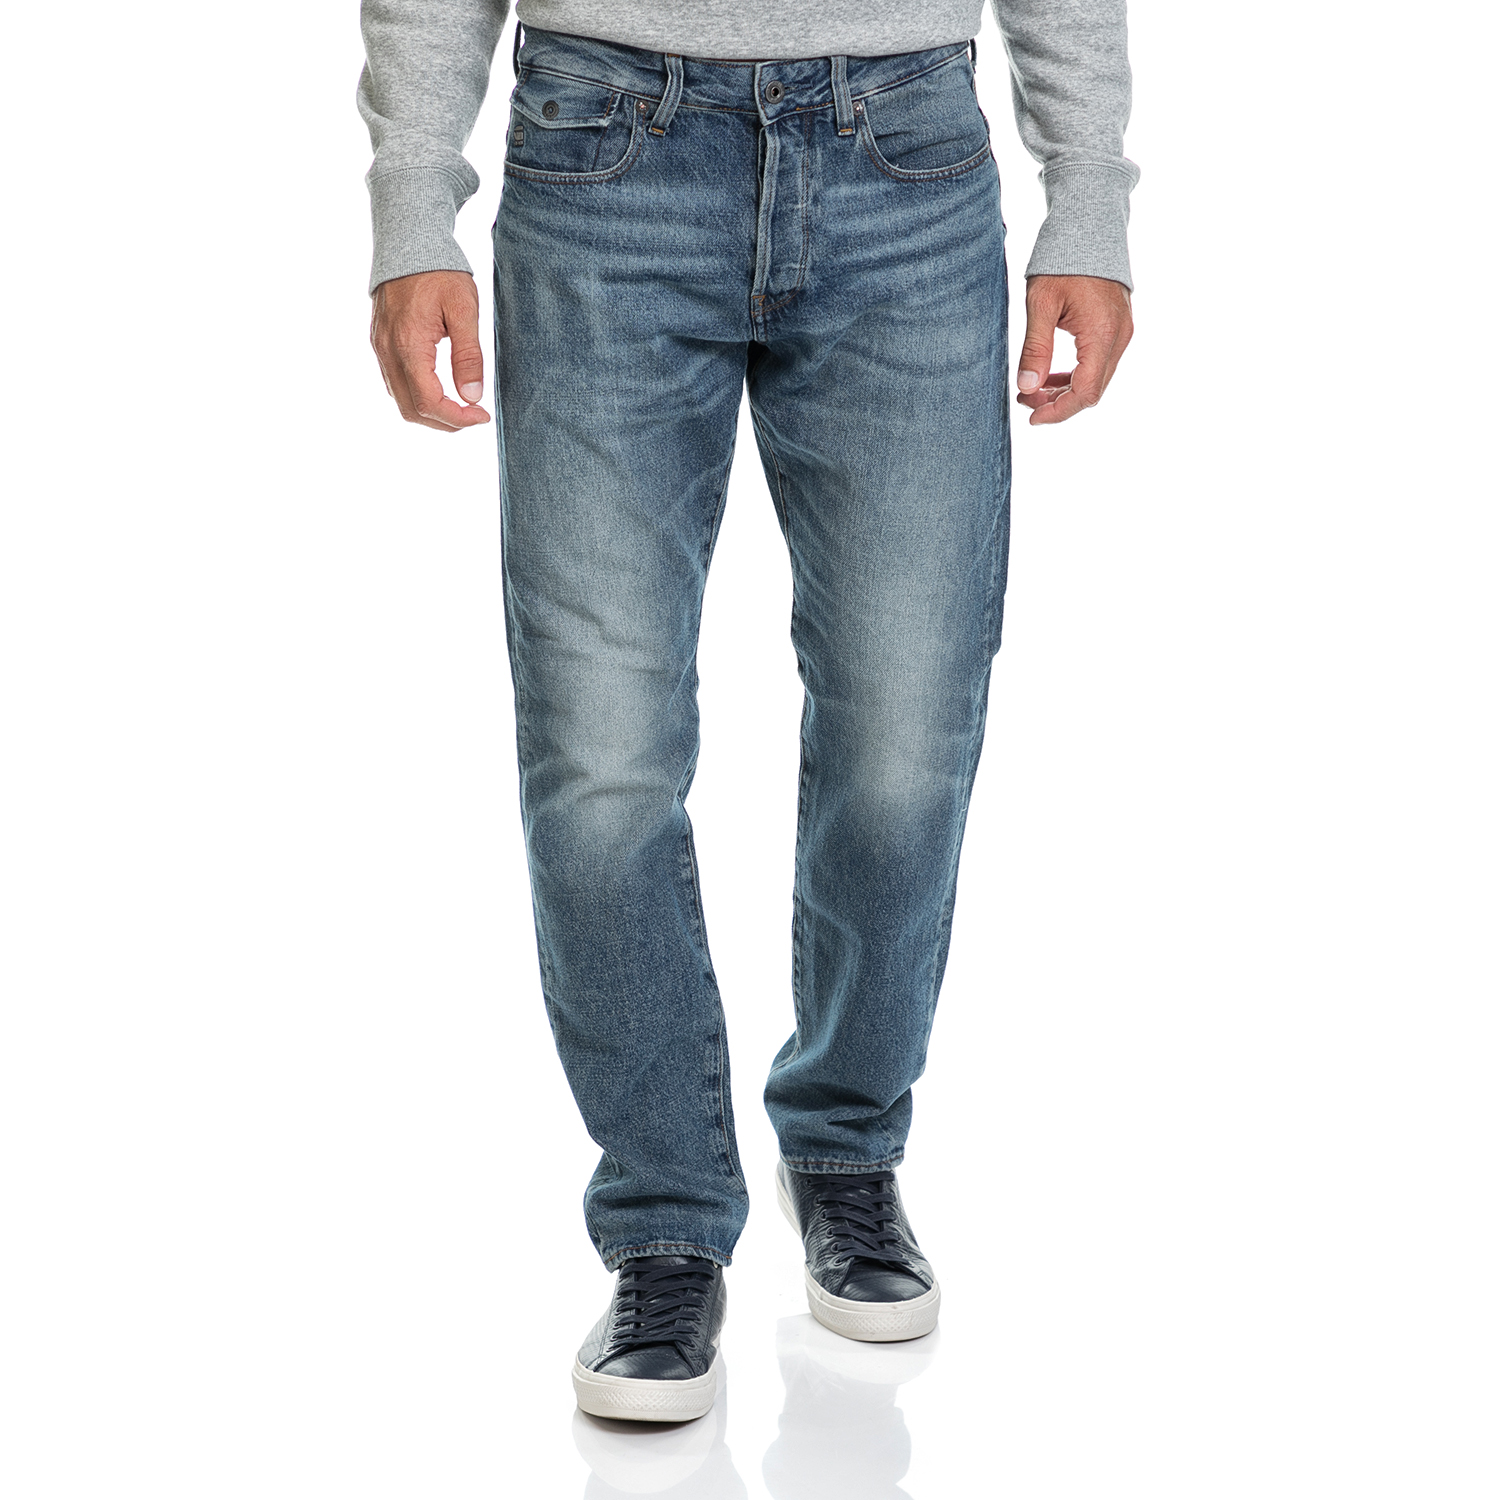 G-STAR - Ανδρικό παντελόνι Riban Tapered G-STAR RAW μπλε ανδρικά ρούχα παντελόνια jean